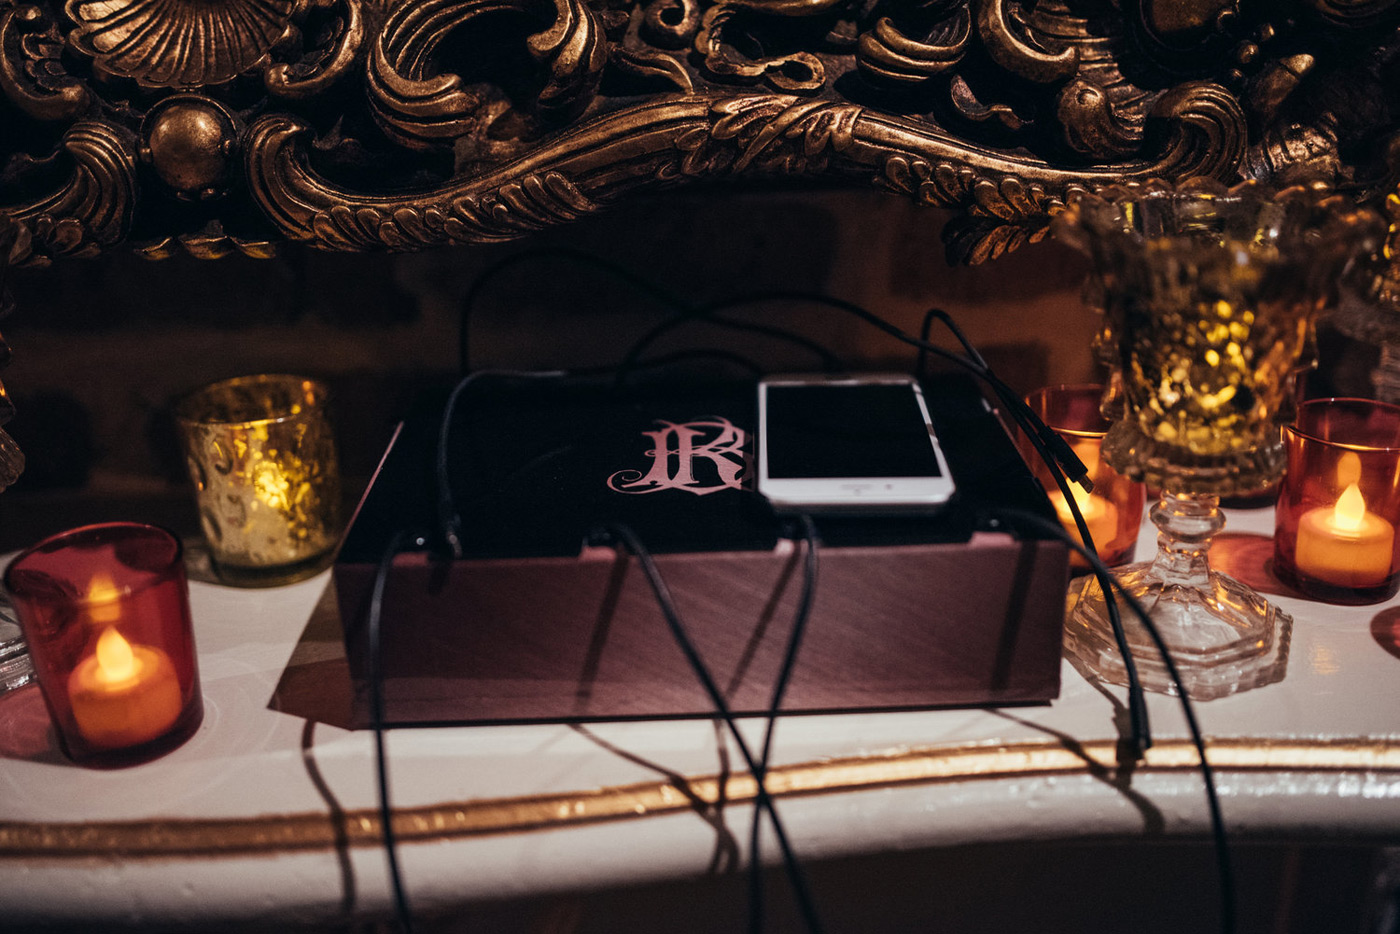 black customized cell phone charging station with monogram